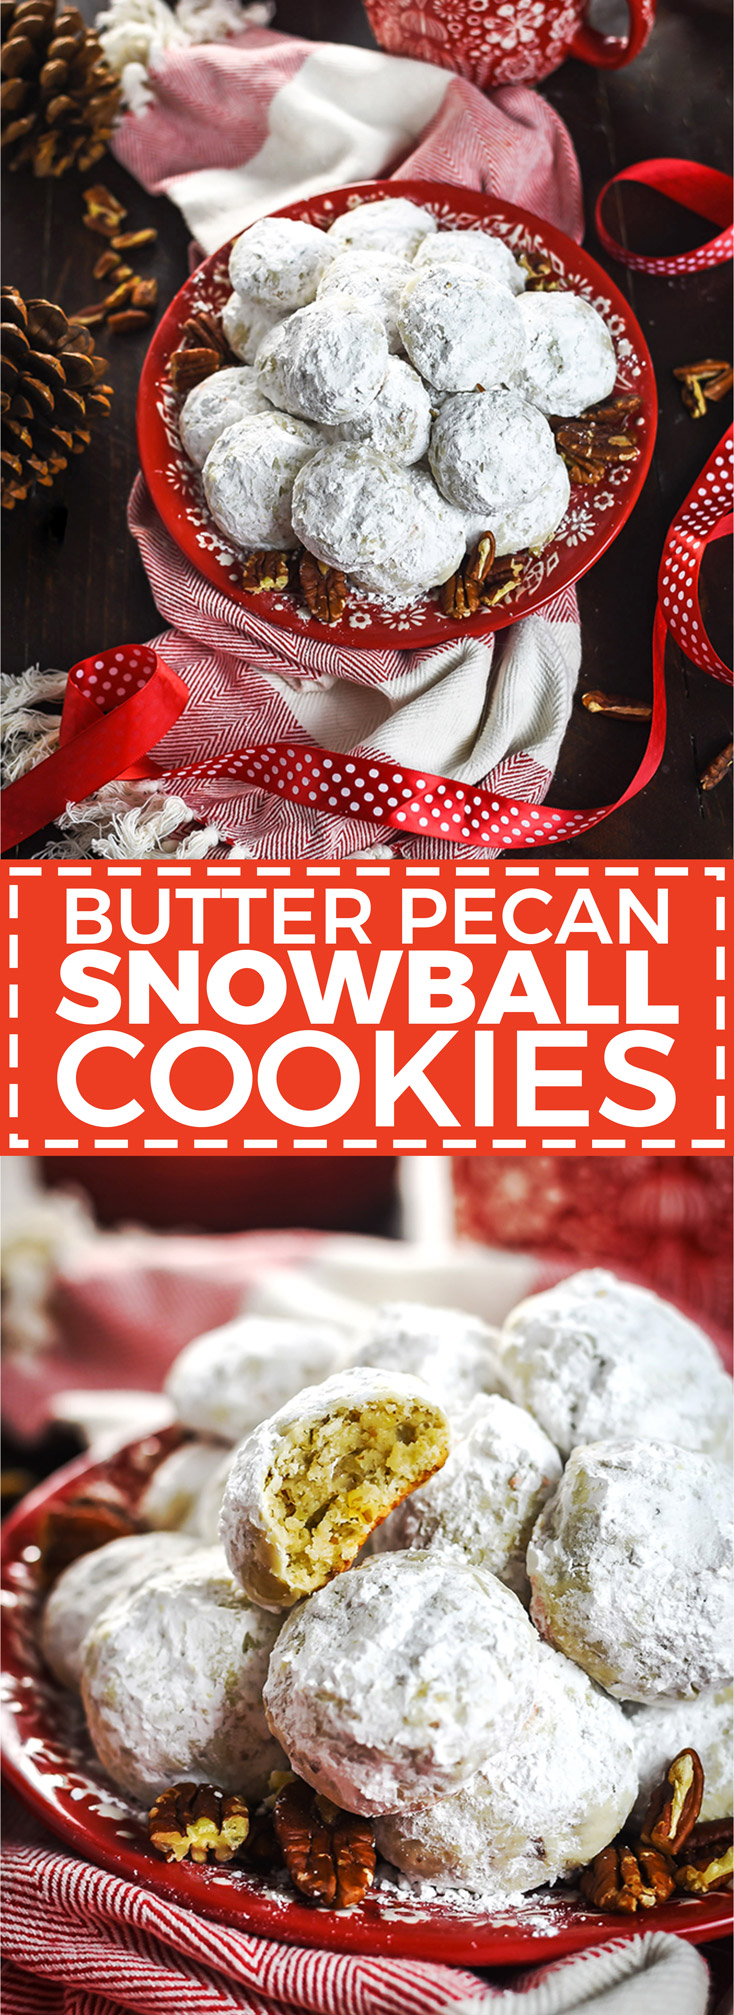 Butter Pecan Snowball Cookies. These tender, tangy, buttery shortbread cookies are loaded with toasted pecans and absolutely perfect for your Christmas cookie platter.   hostthetoast.com